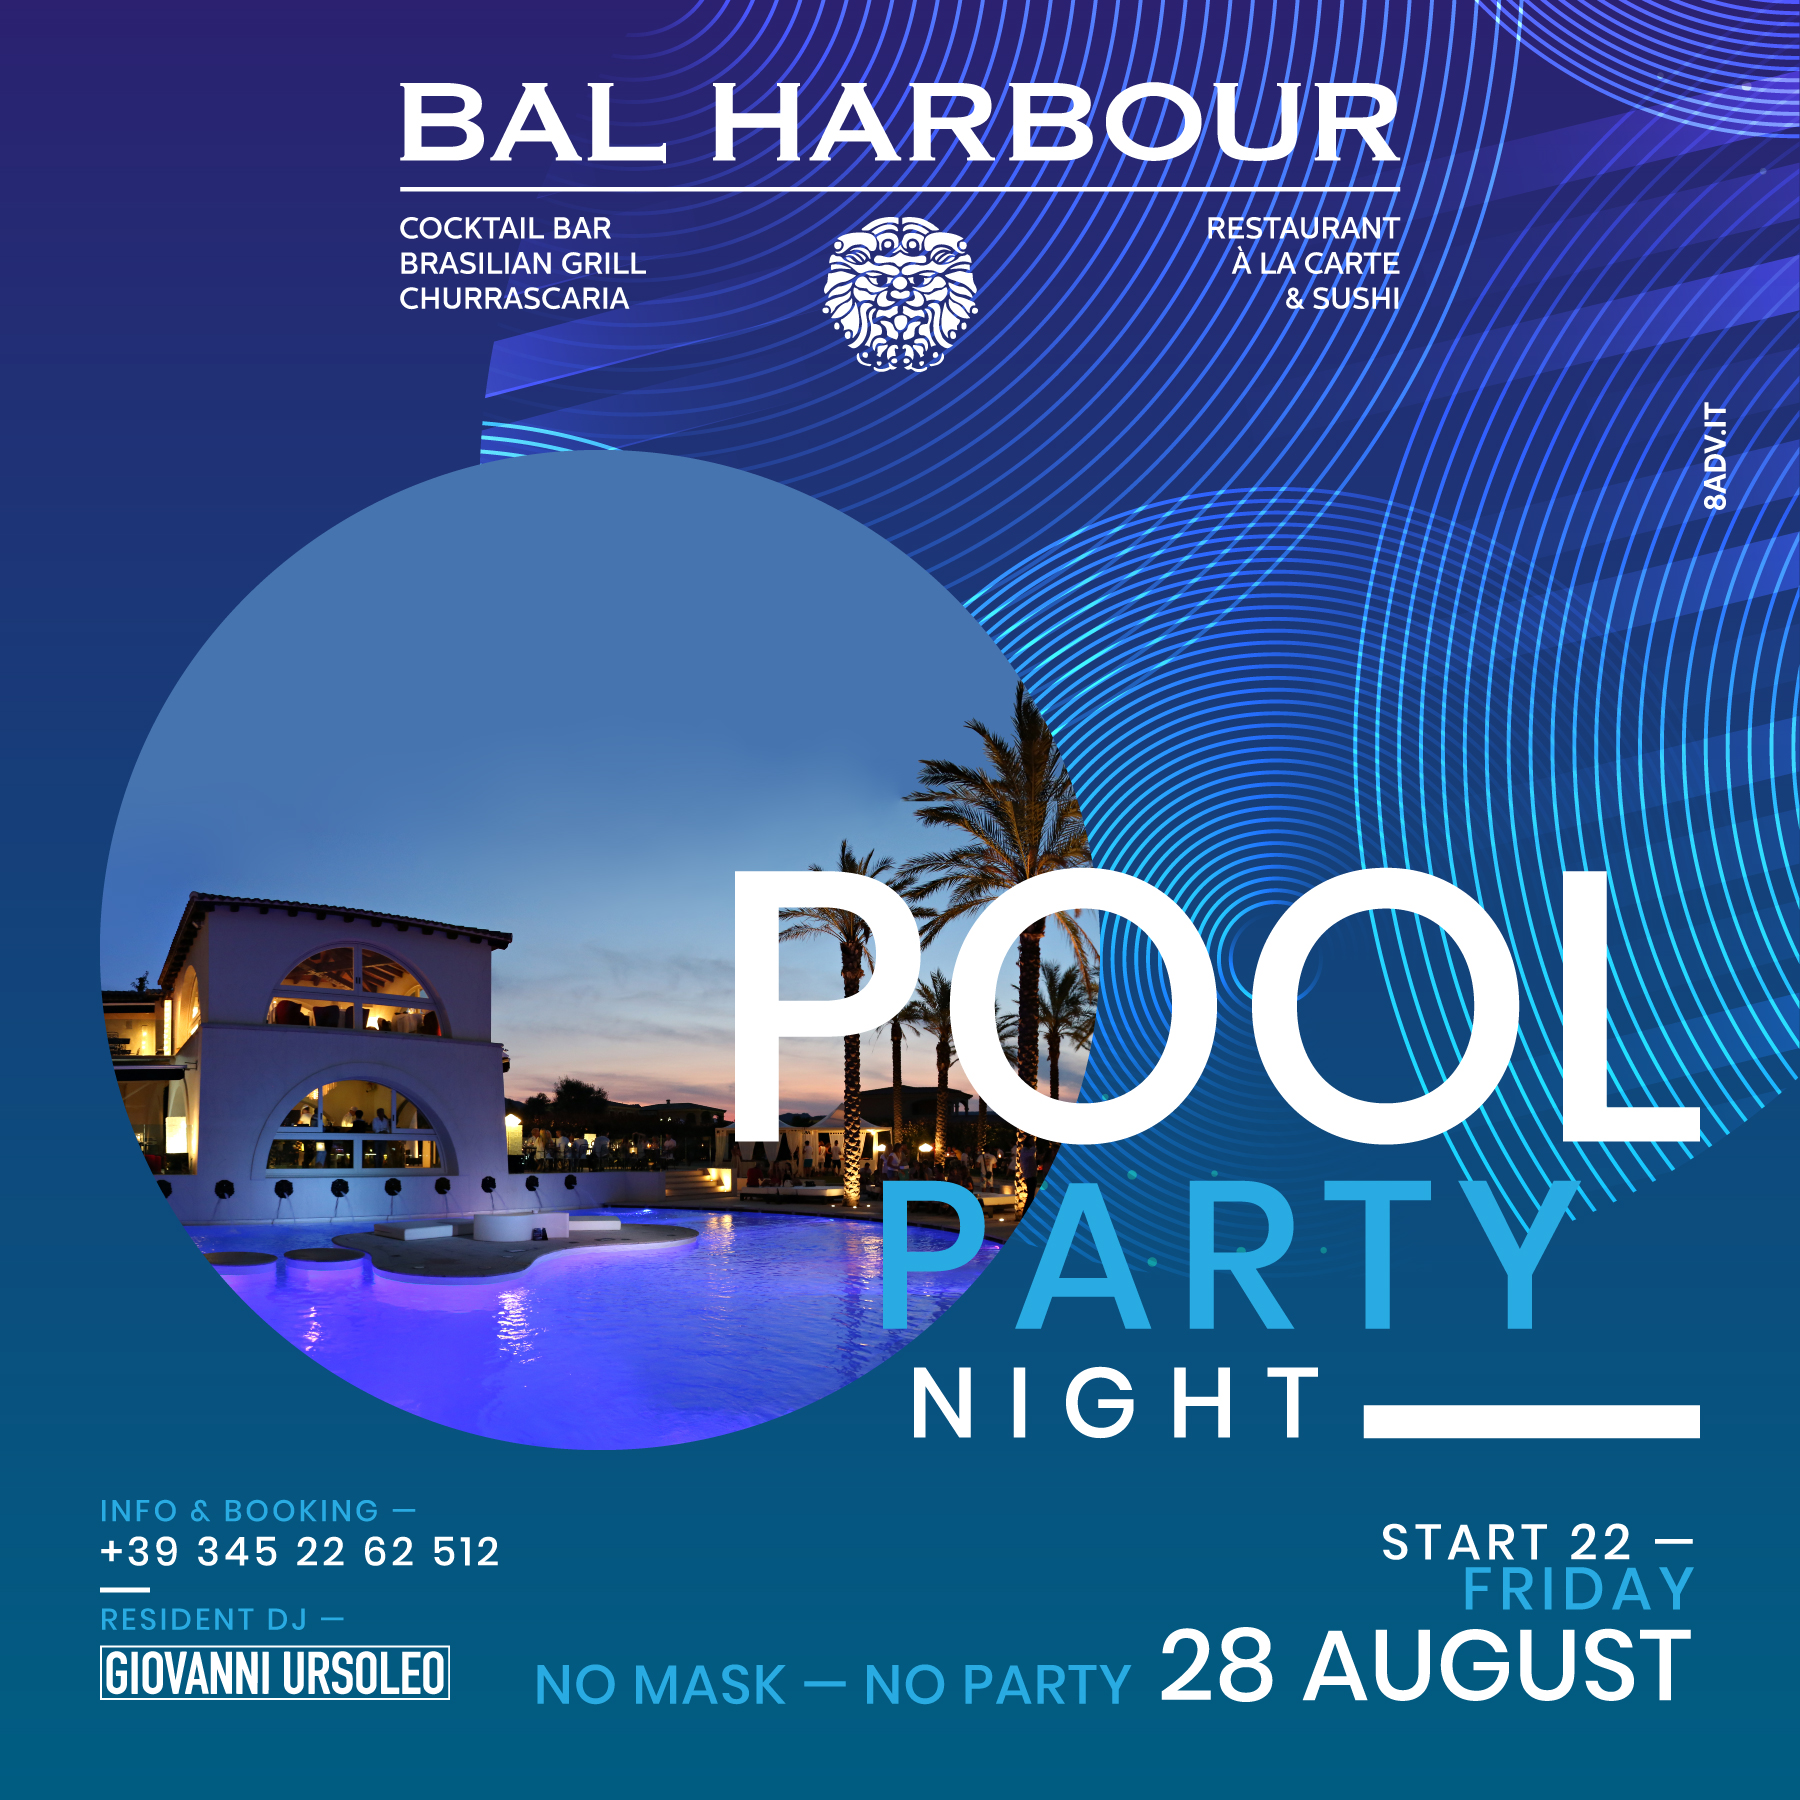 Pool Party Friday Night